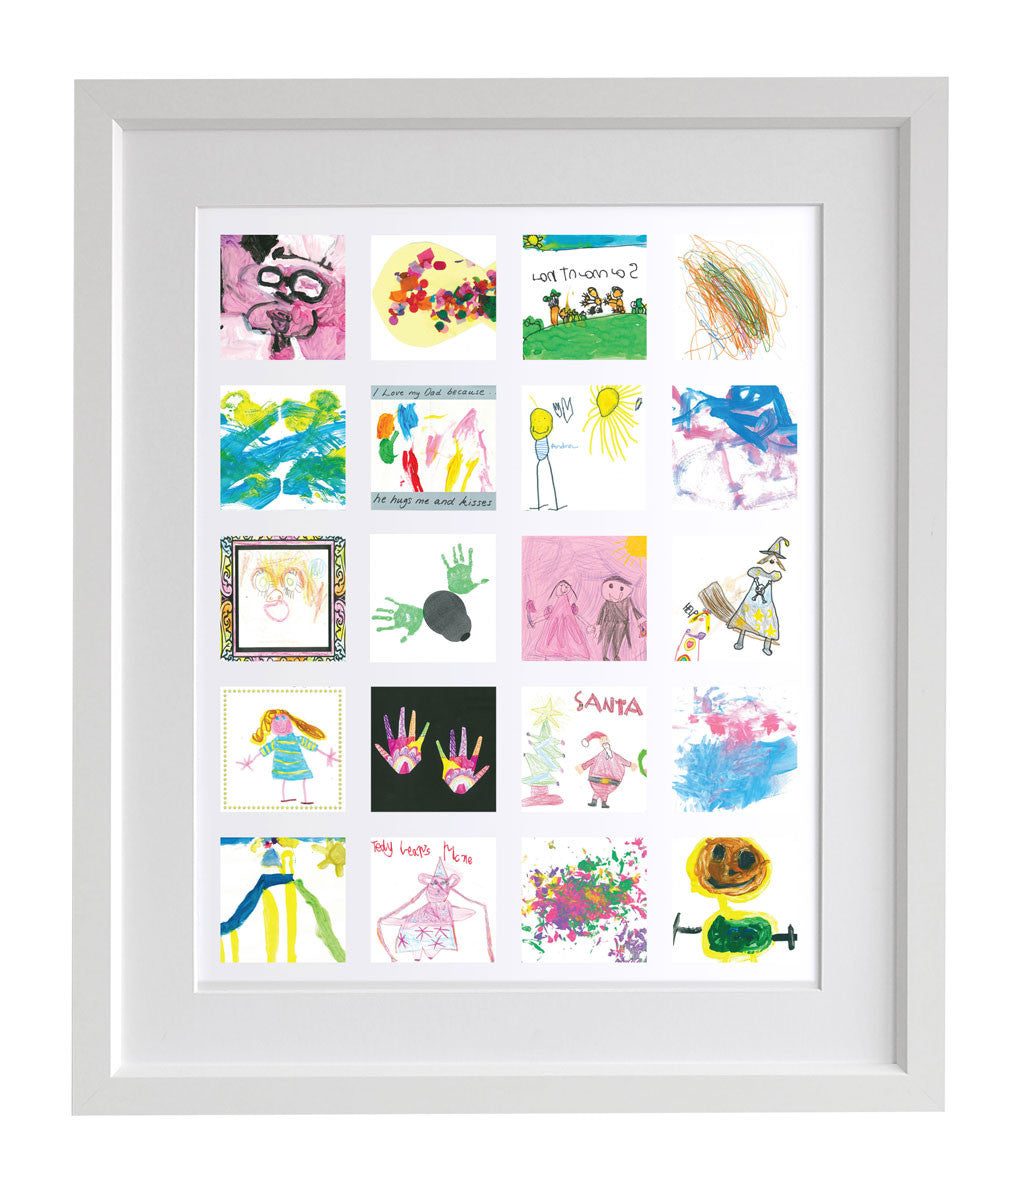 Framed Artwork 20